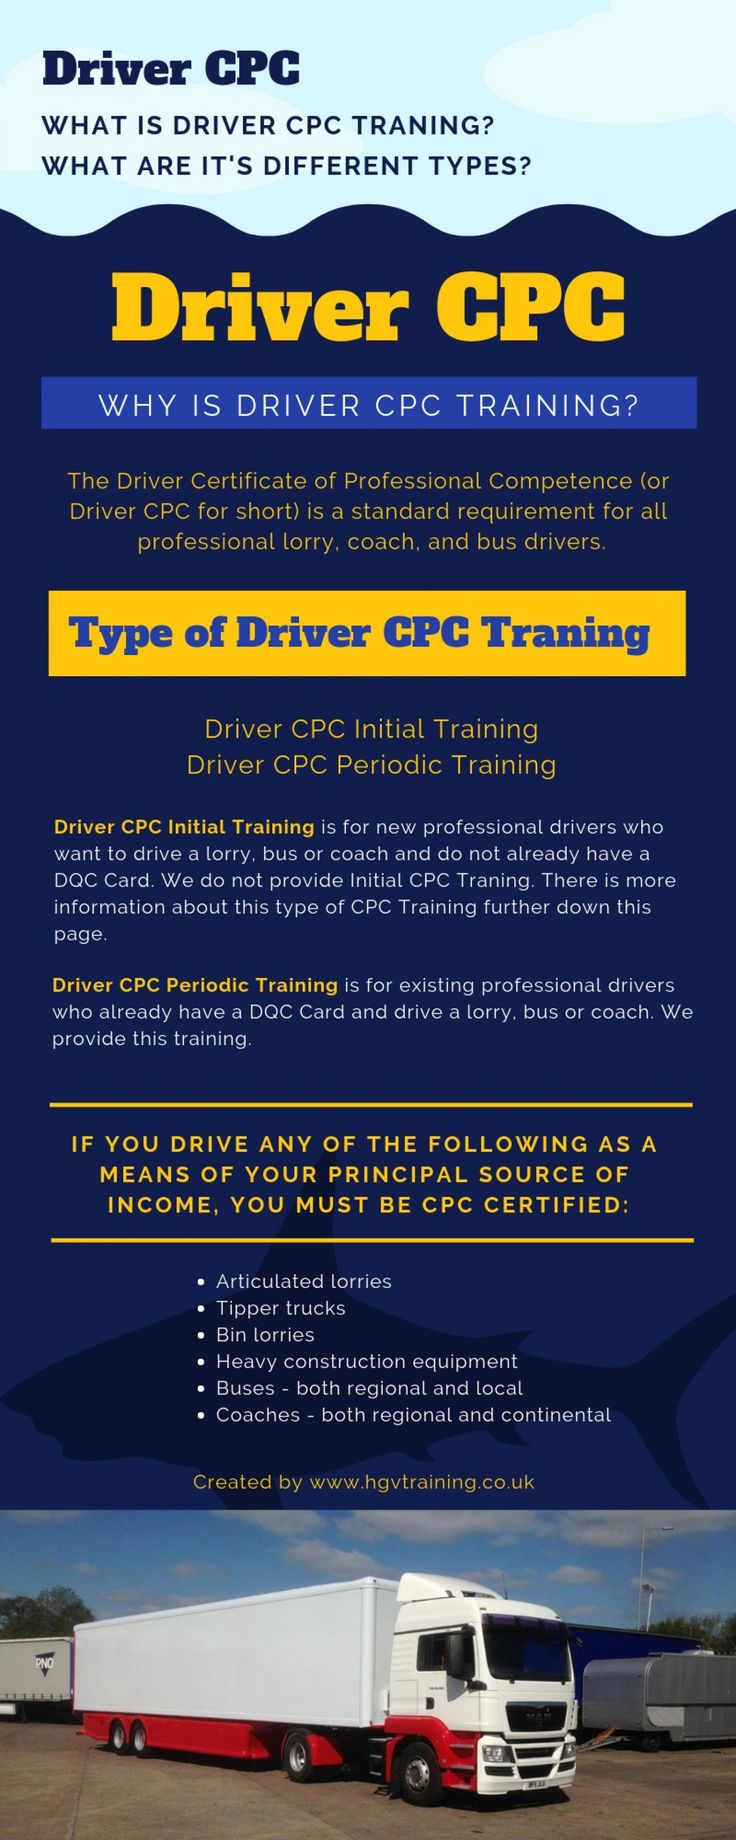 cpc training driver types different courses ly visual